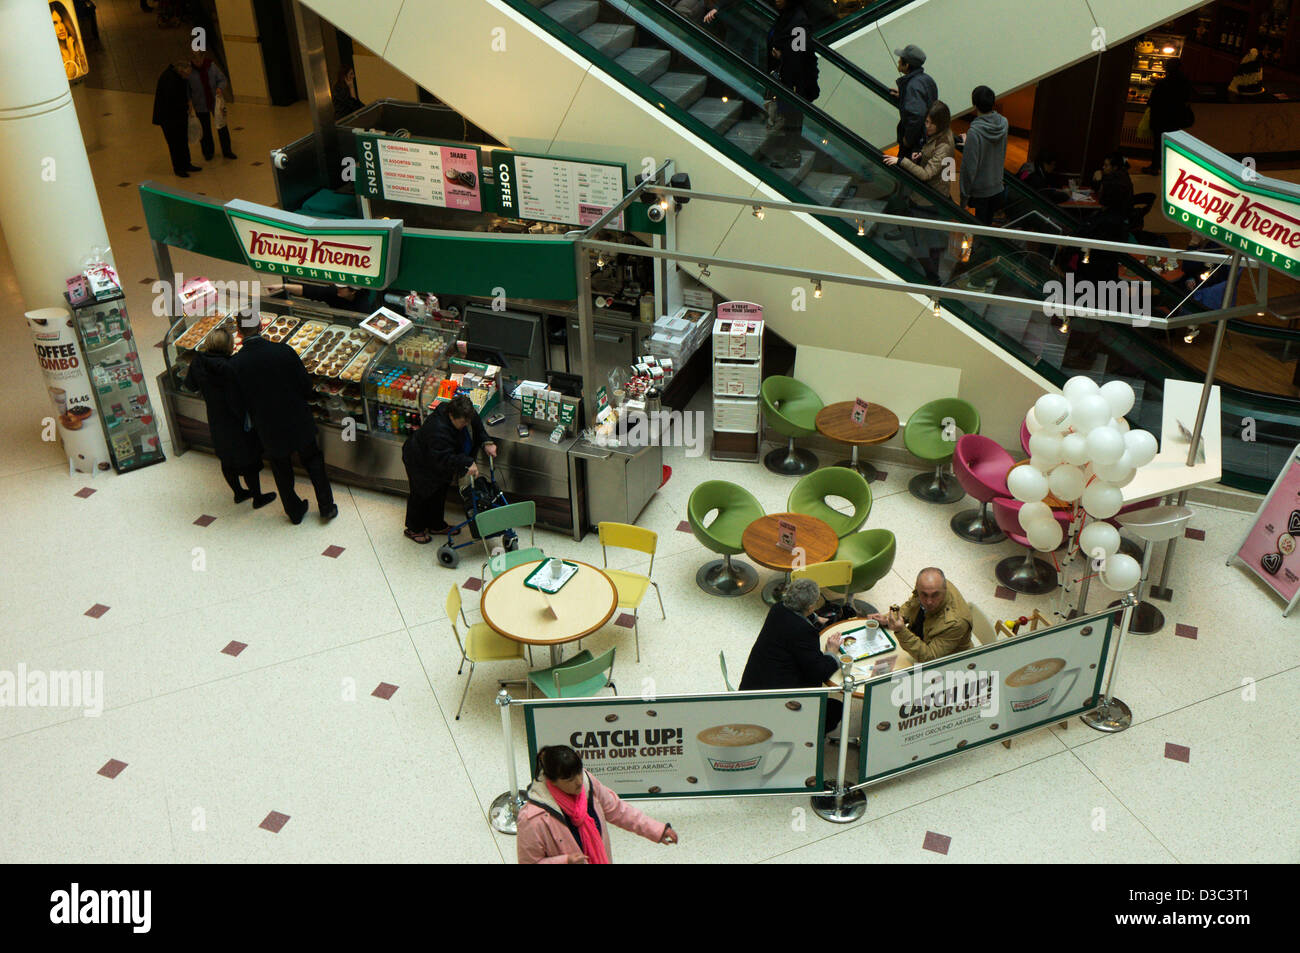 Krispy Kreme Doughnuts kiosk in The Glades shopping centre, Bromley, Kent, now Intu Bromley. - Stock Image